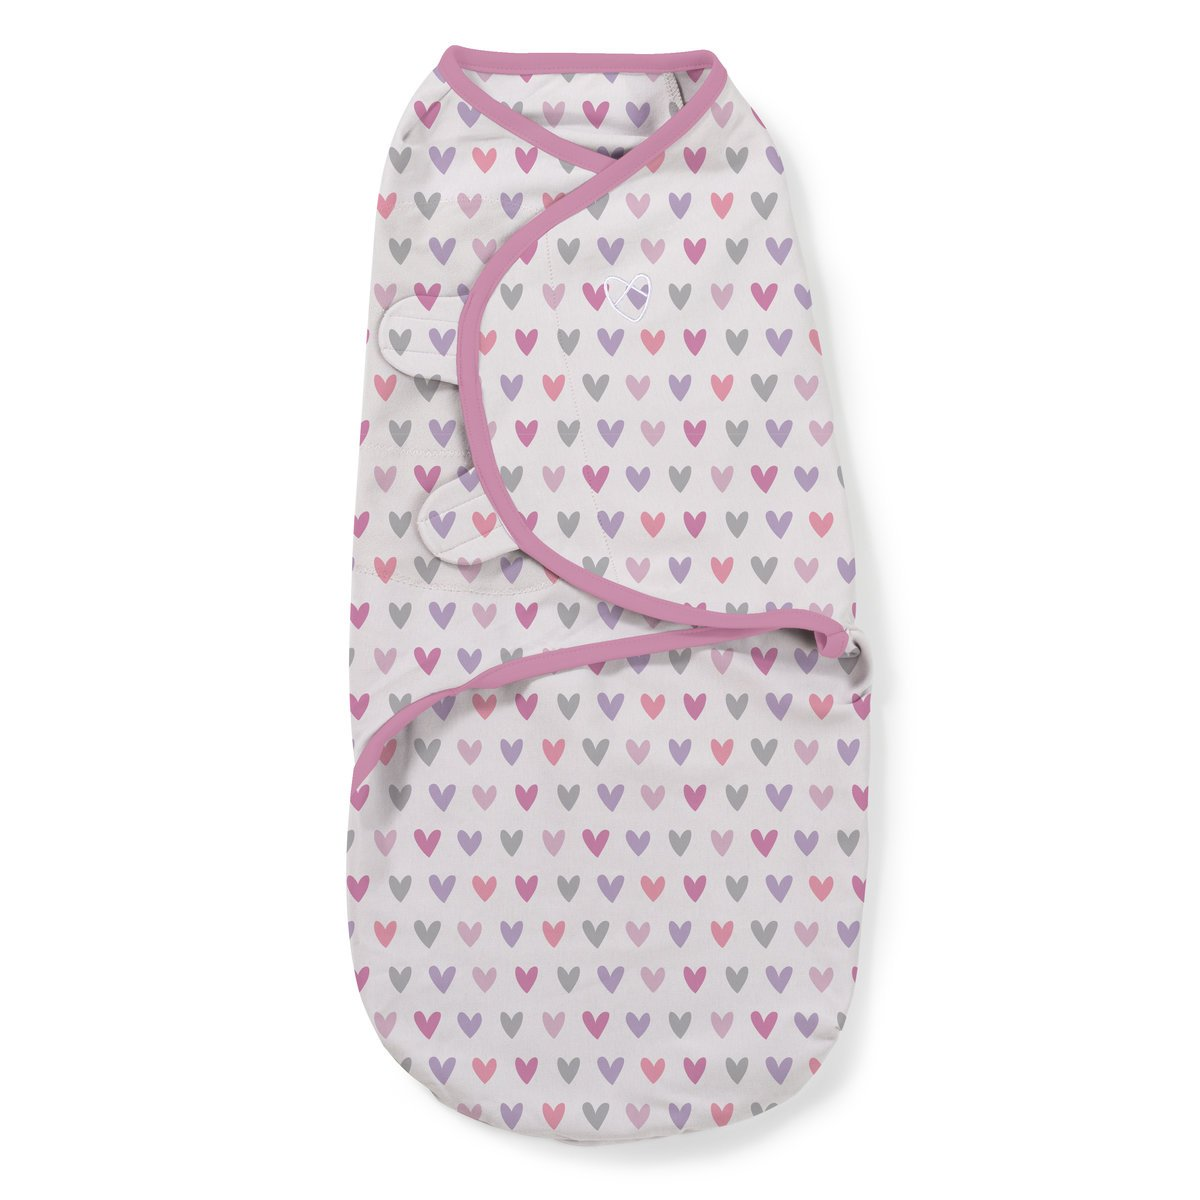 Love you SwaddleMe ** Original Swaddle ** Taille S pour 0-3 mois ** Gigoteuse demmaillotage